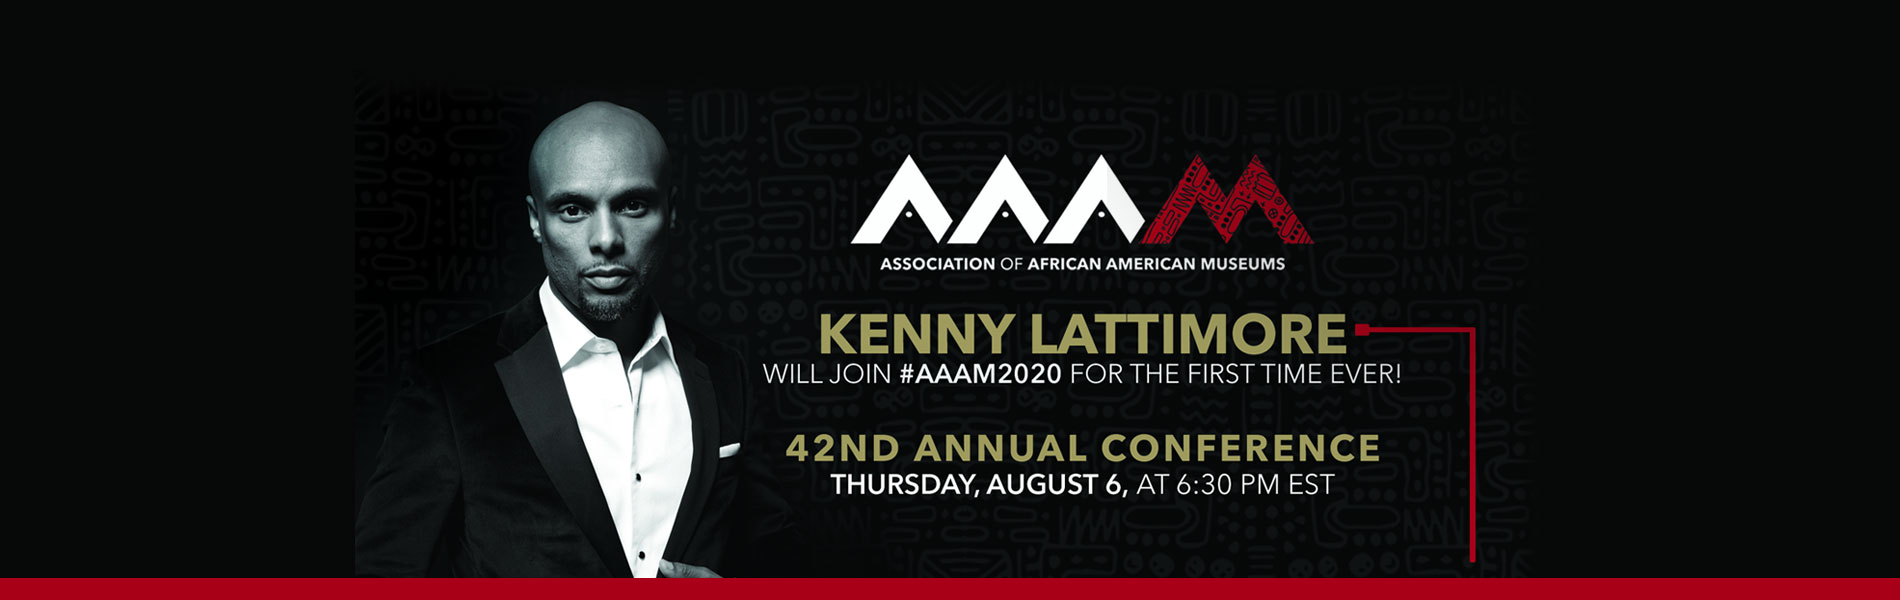 Grammy-nominated Kenny Lattimore will join the #AAAM2020 Conference lineup